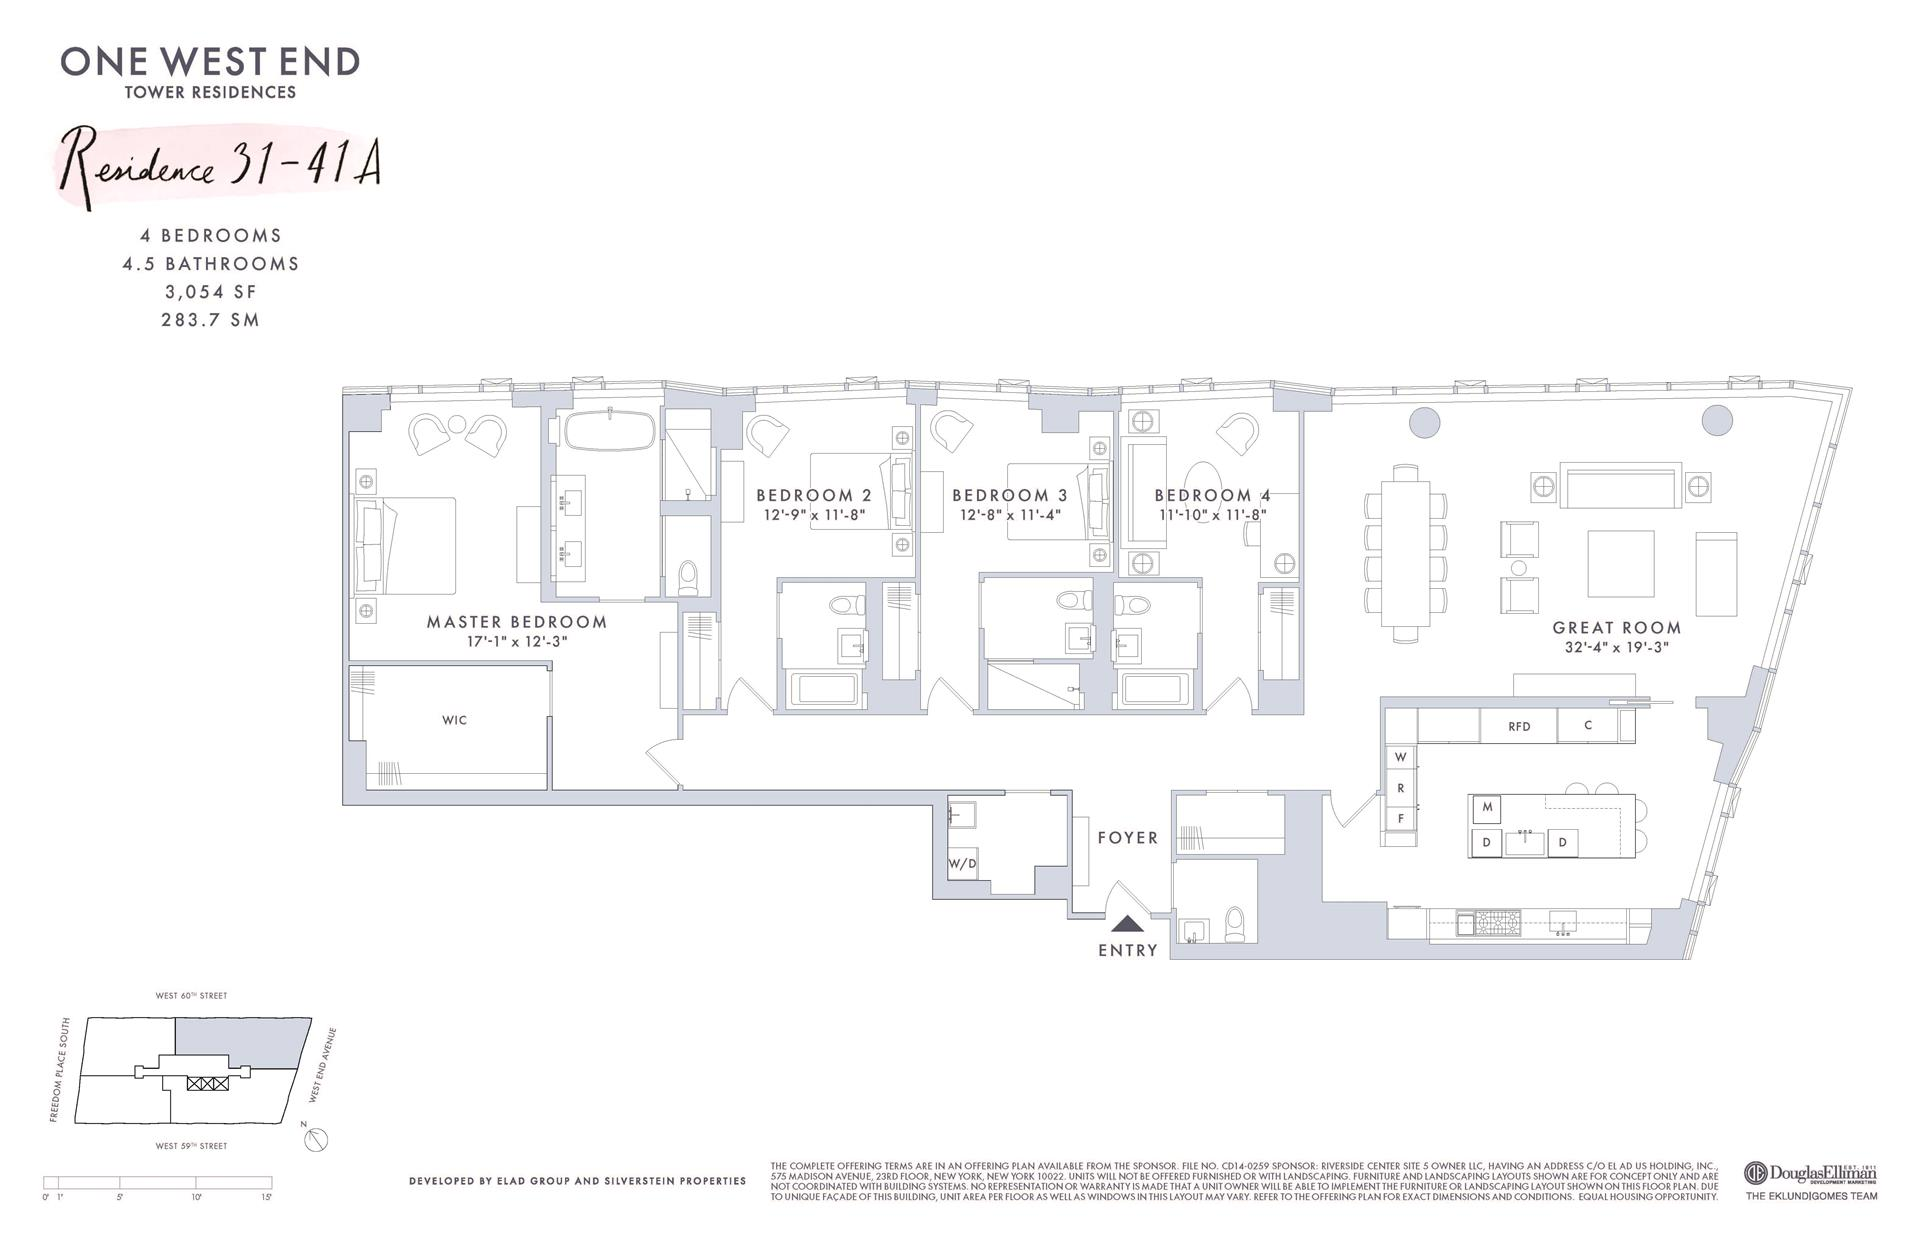 Floor plan of One West End, 1 West End Avenue, 38A - Upper West Side, New York